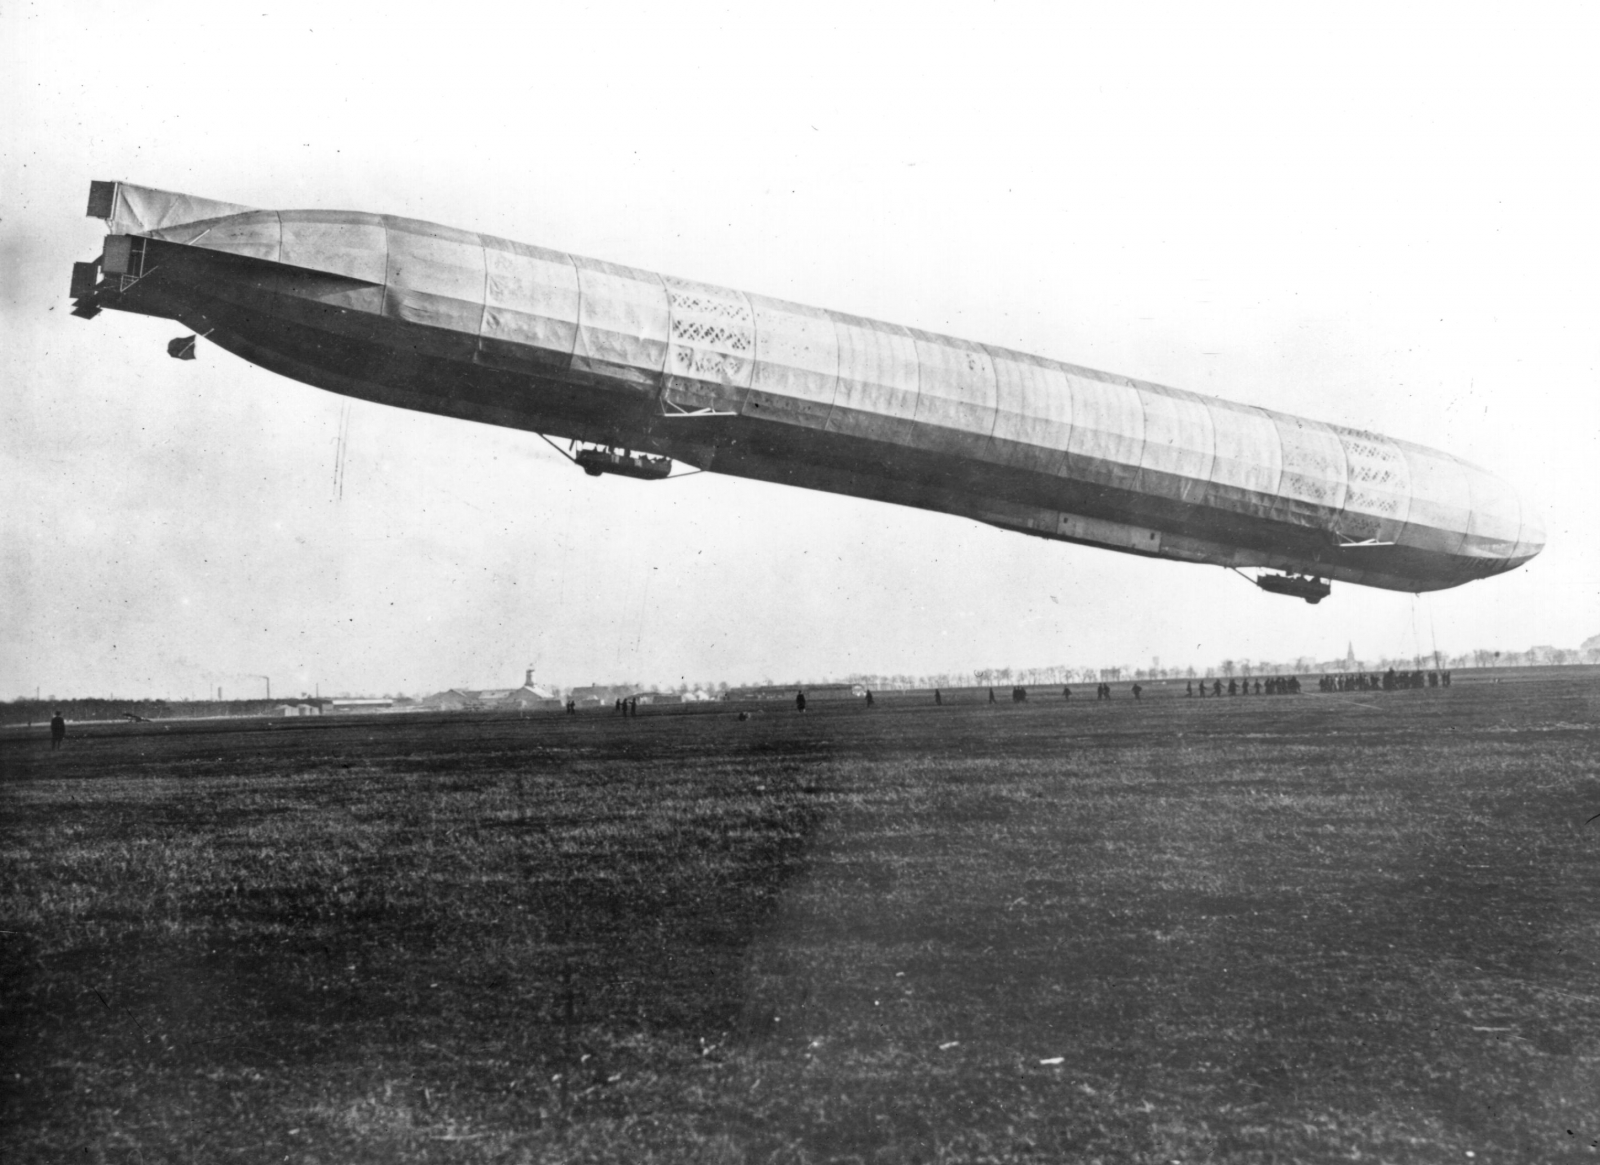 42 Zeppelin Raids on English Towns Kill 426 and Injure 864